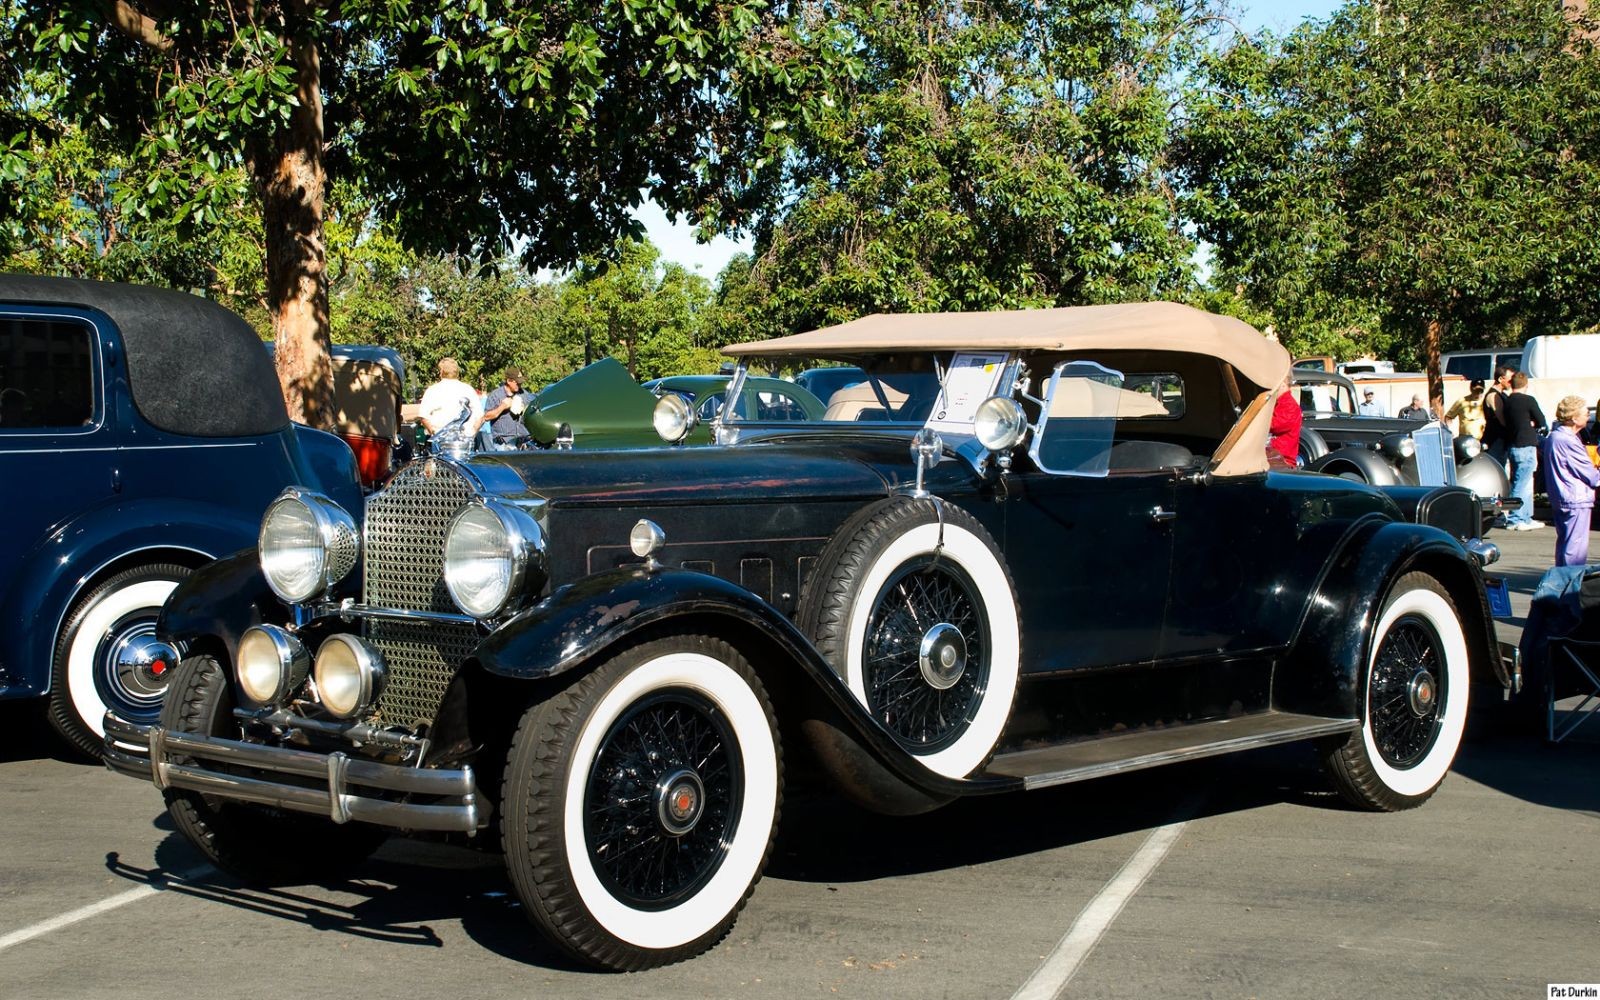 1930 Packard 740 Roadster - black - fvl